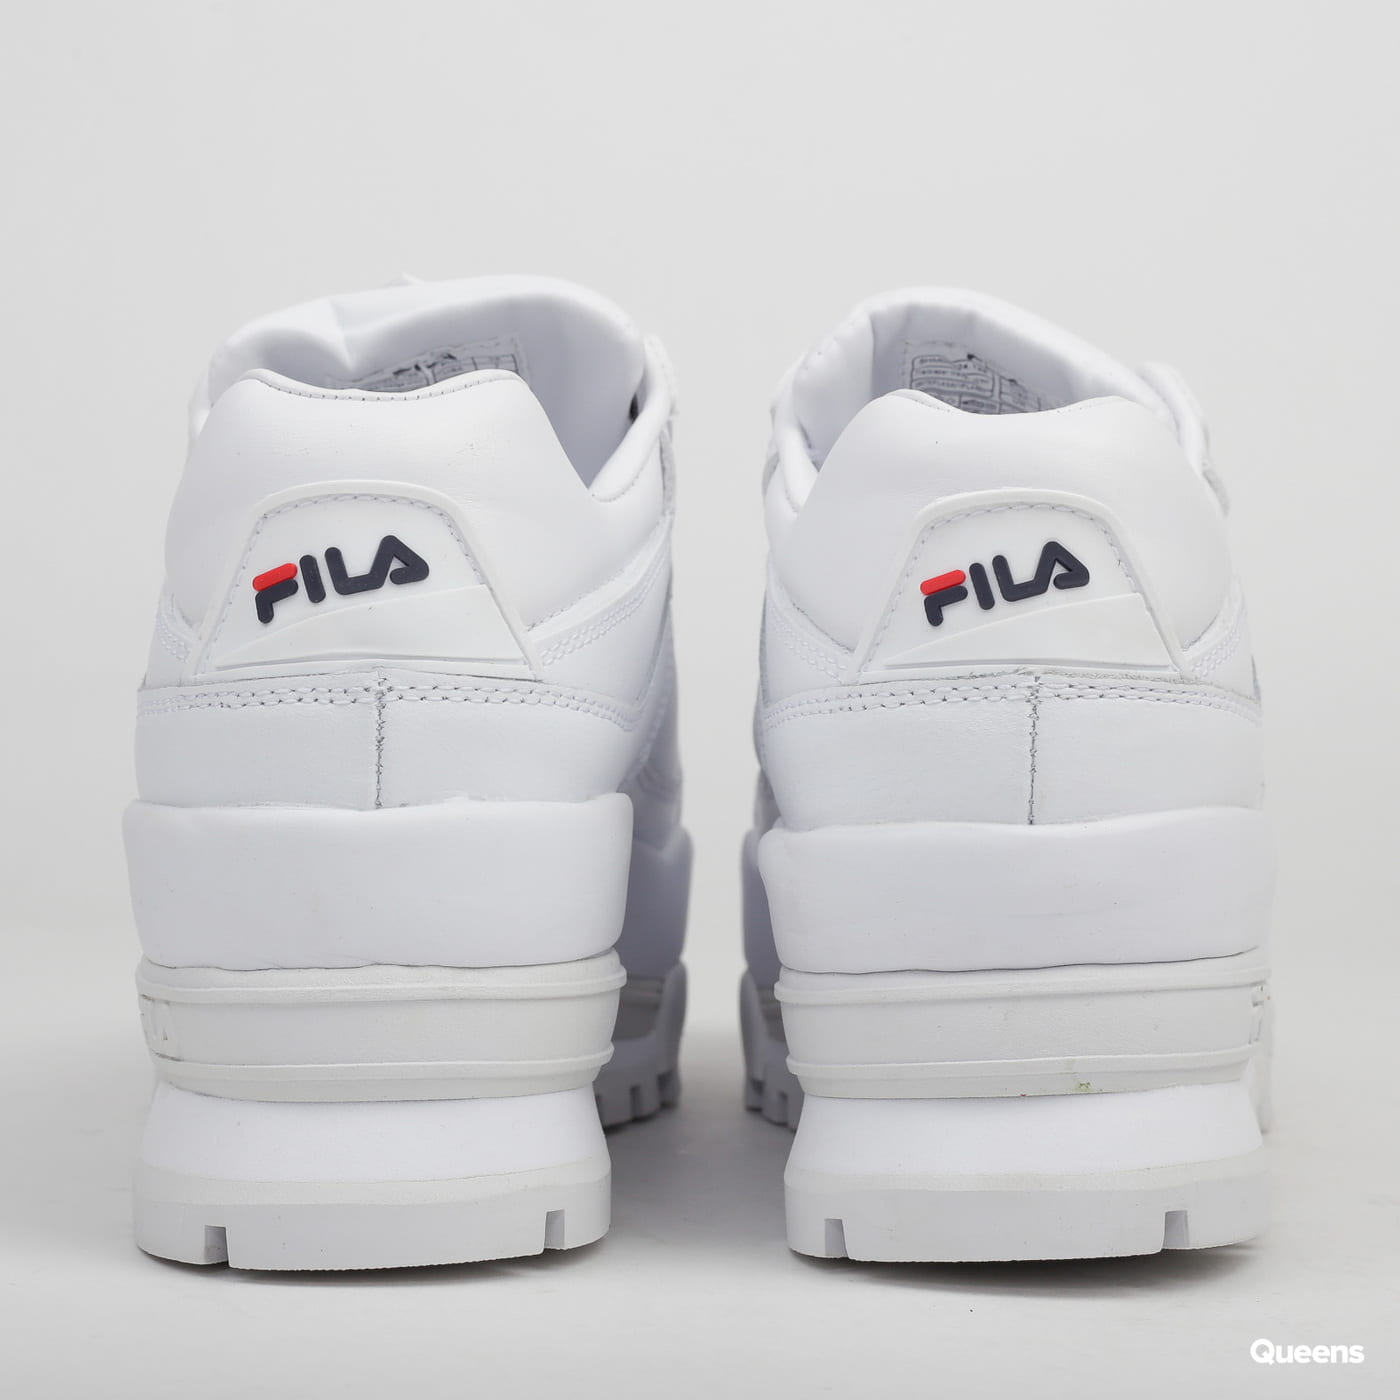 Fila Trailblazer Wedge WMN white / fila navy / fila red